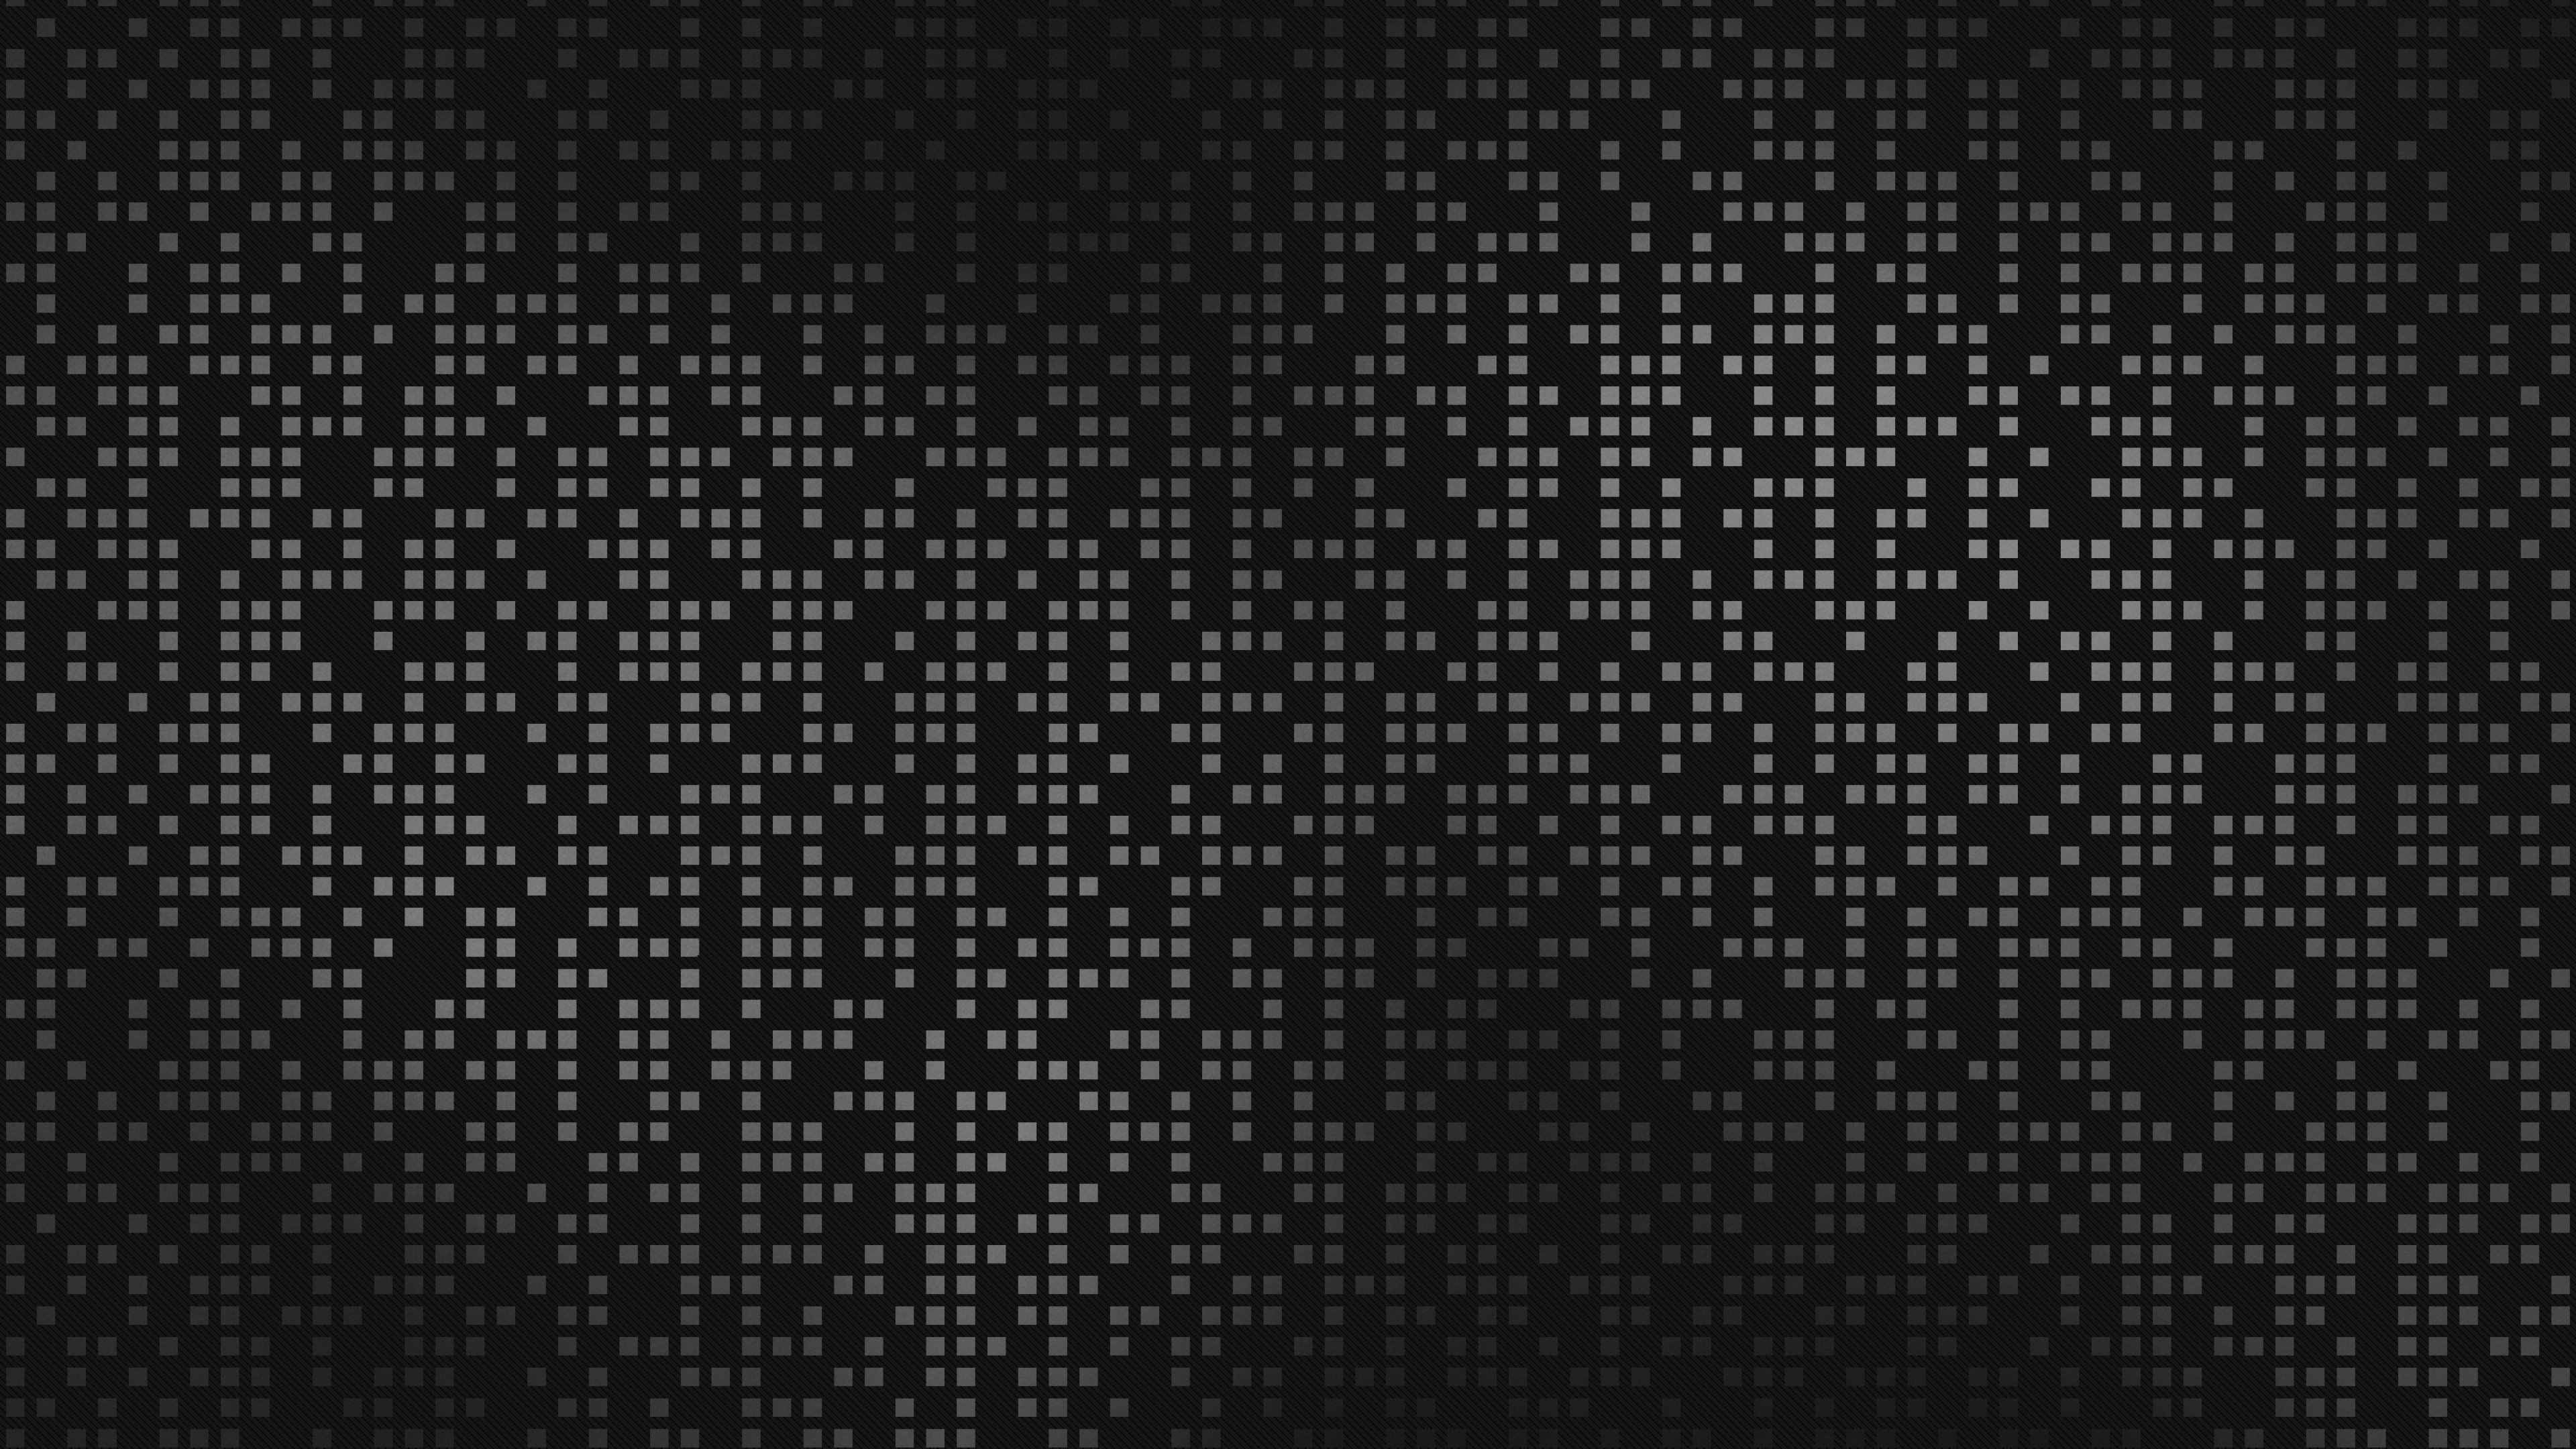 Gray Black Texture Surface Point Wallpaper Background 4K Ultra HD 3840x2160